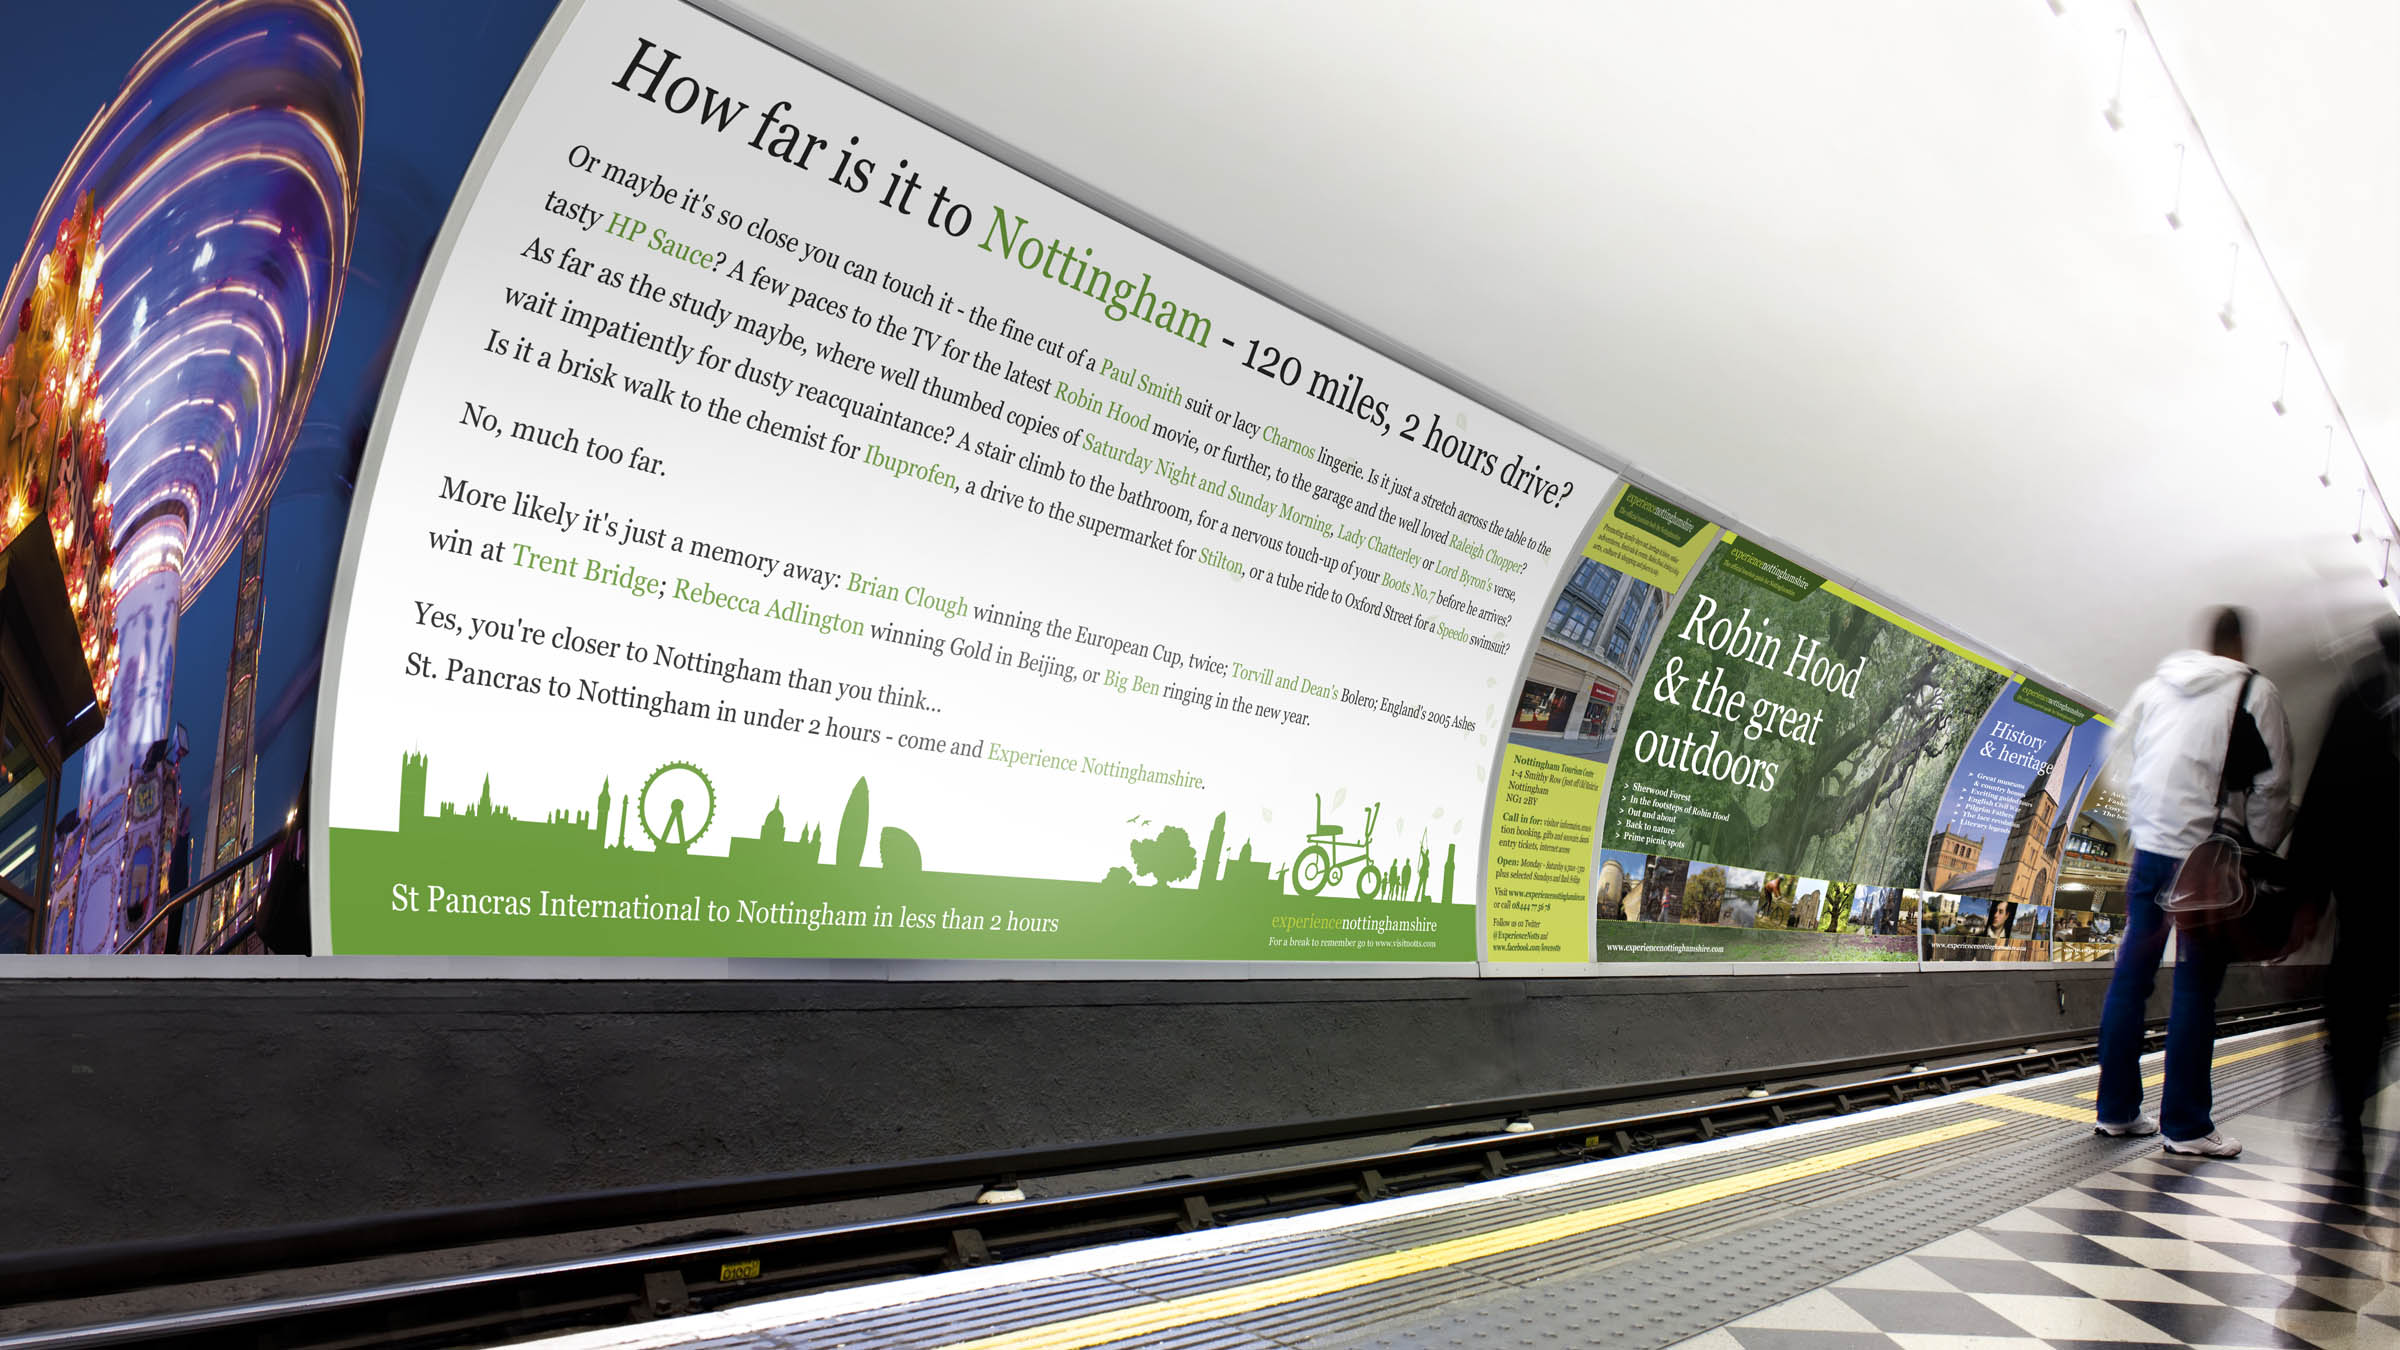 Experience Nottinghamshire advertising concept for the London Underground